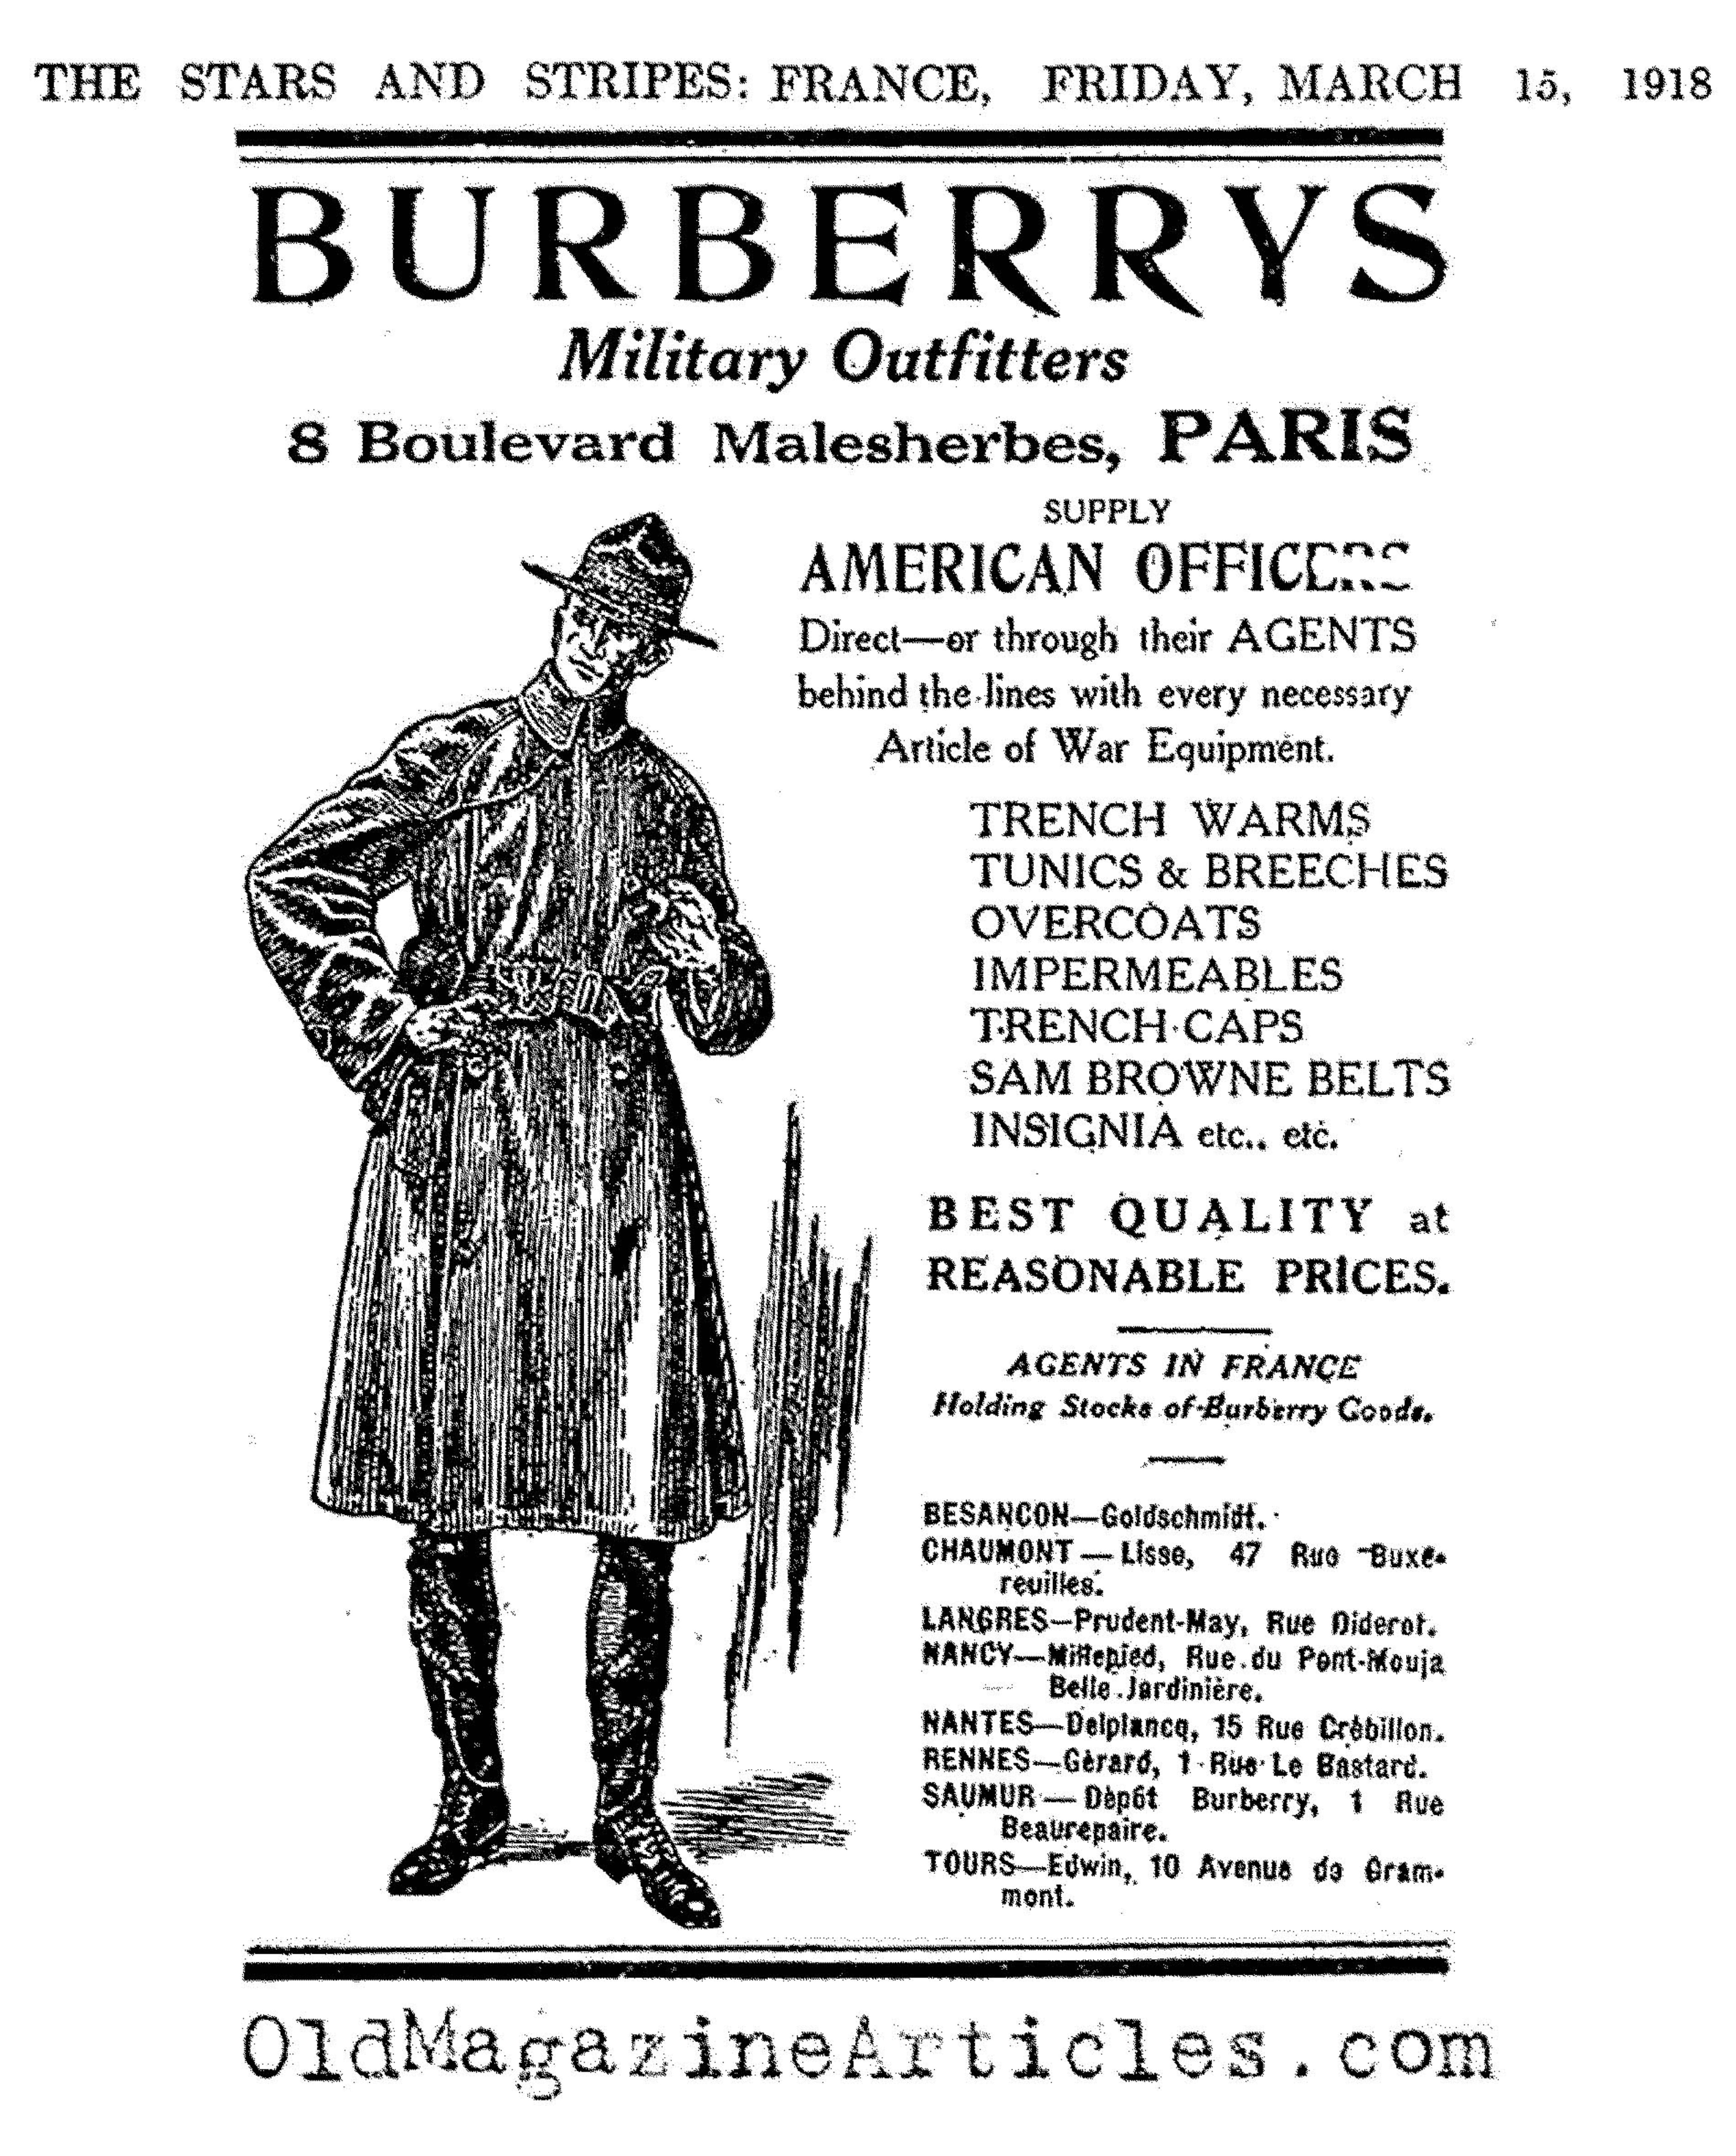 The Famous One: The Burberry Trench Coat  (The Stars and Stripes, 1918)